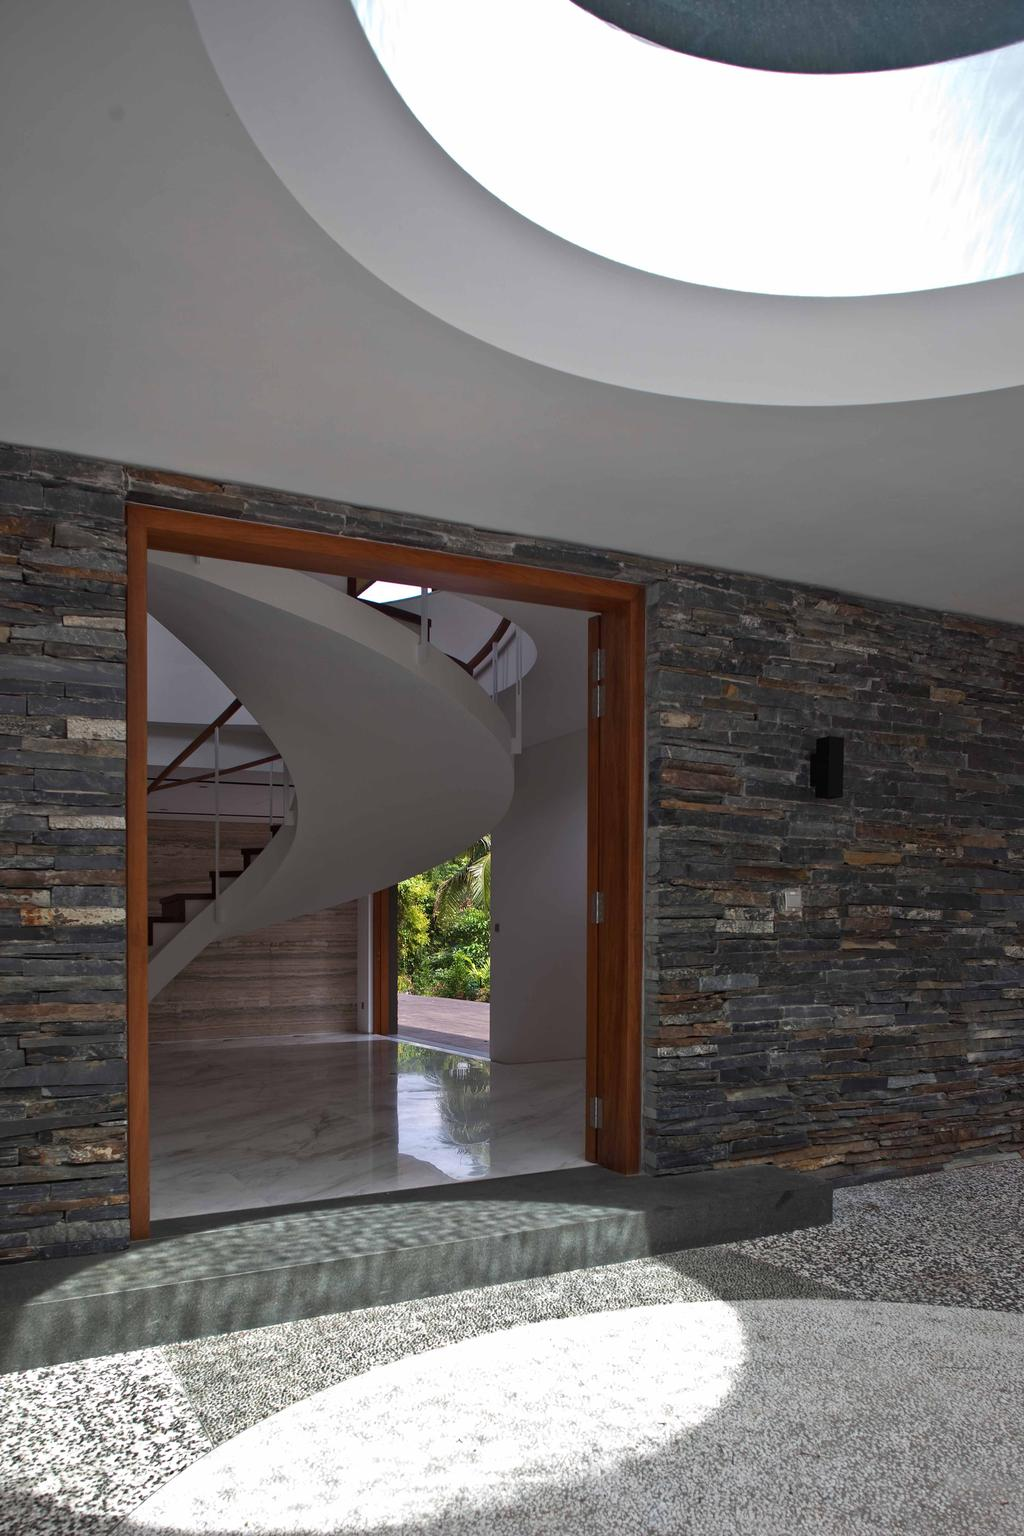 Contemporary, Landed, Bukit Timah (Water-Cooled House), Architect, Wallflower Architecture + Design, Curve Stairway, Twisted Stairway, Concrete Flooring, Brick Walls, Grey Wall, Gray Wall, Banister, Handrail, Staircase, Brick